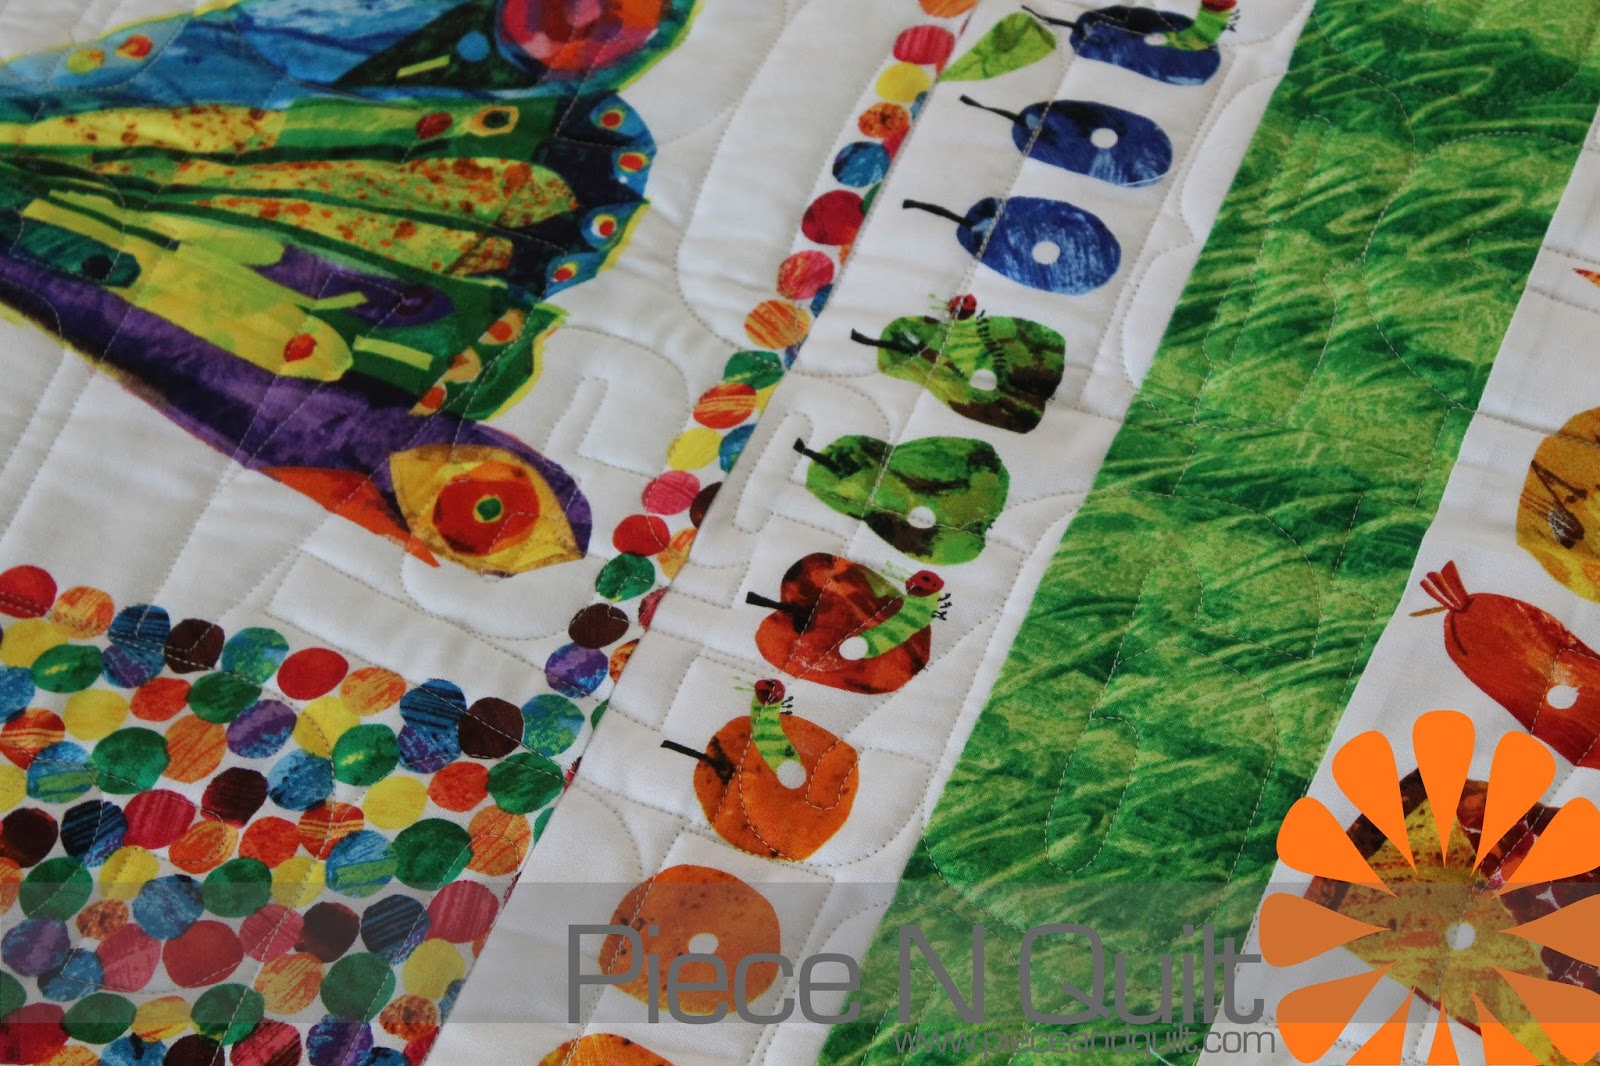 Piece N Quilt: Hungry Caterpillar Quilt : the hungry caterpillar quilt - Adamdwight.com